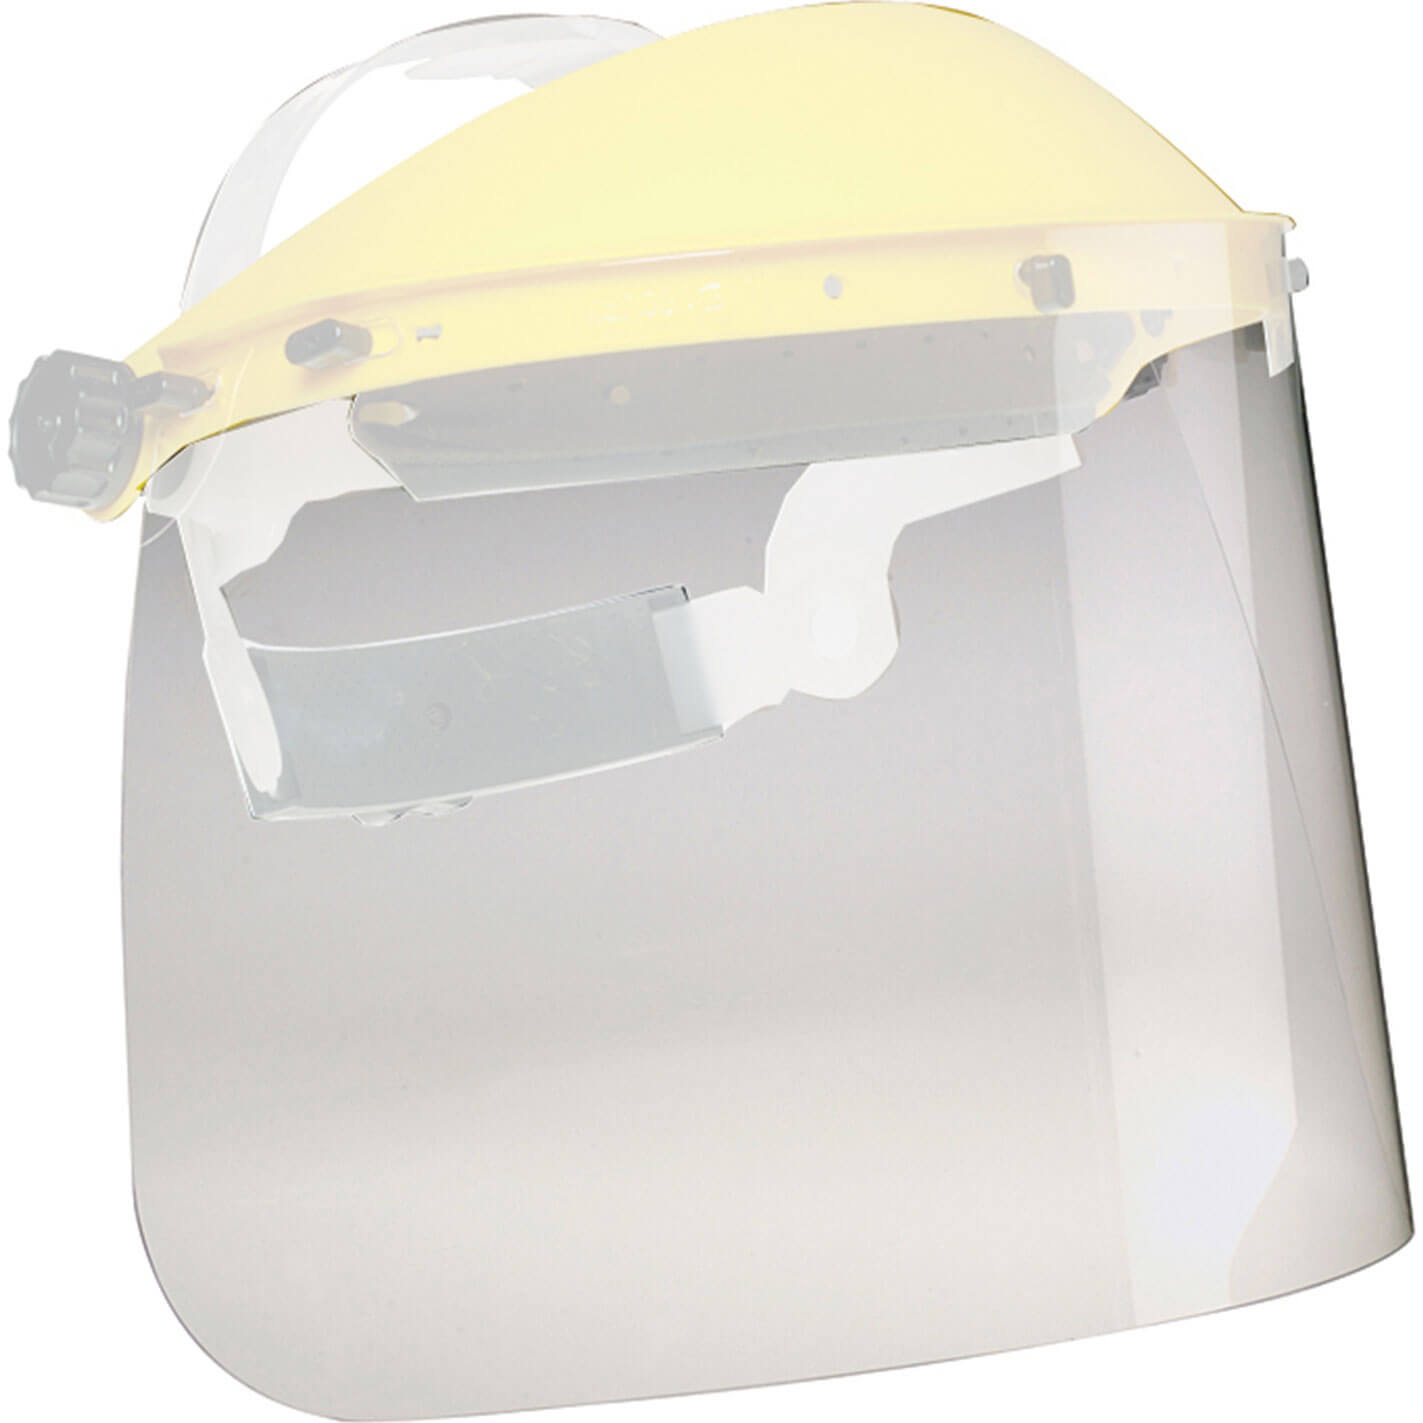 Image of Scan Replacement Visor for SCAPPEVISOR